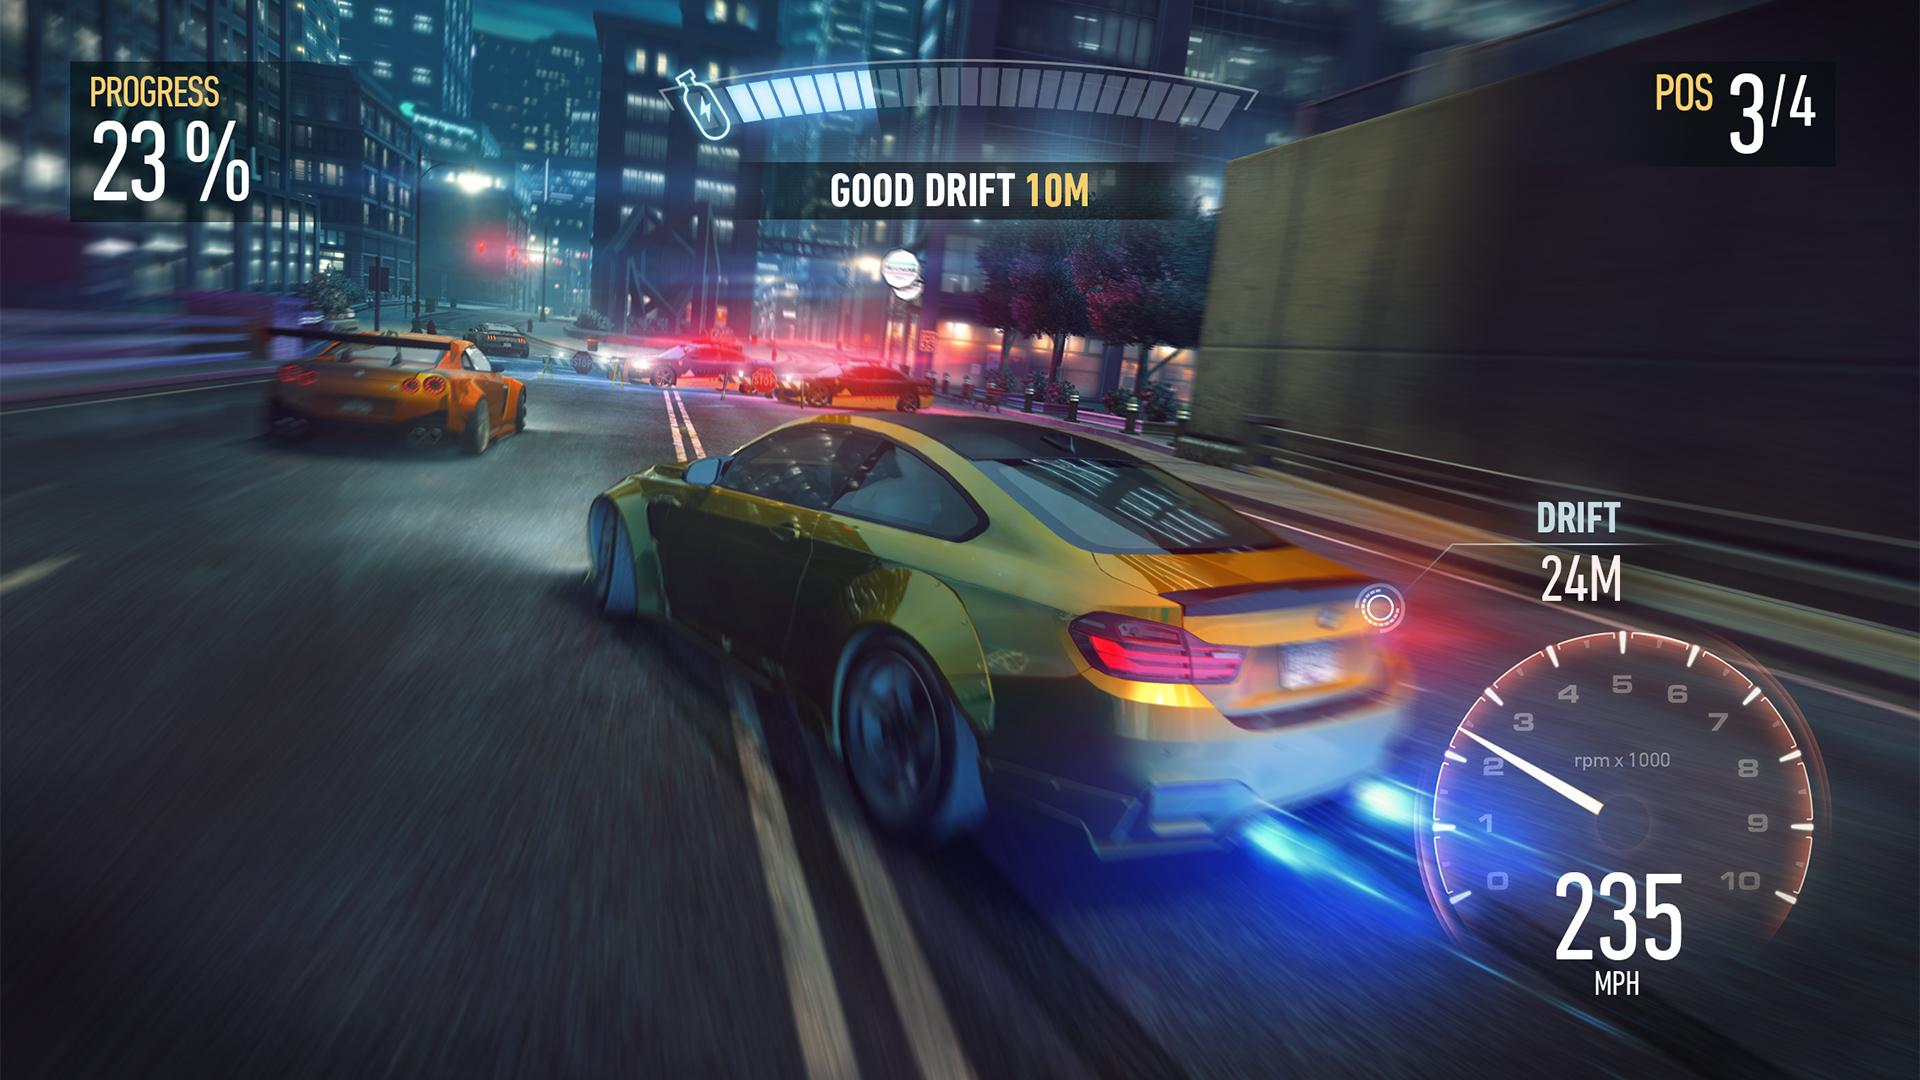 Need for Speed No Limits Mod apk (Unlimited Money/Unlocked All) GPU 7